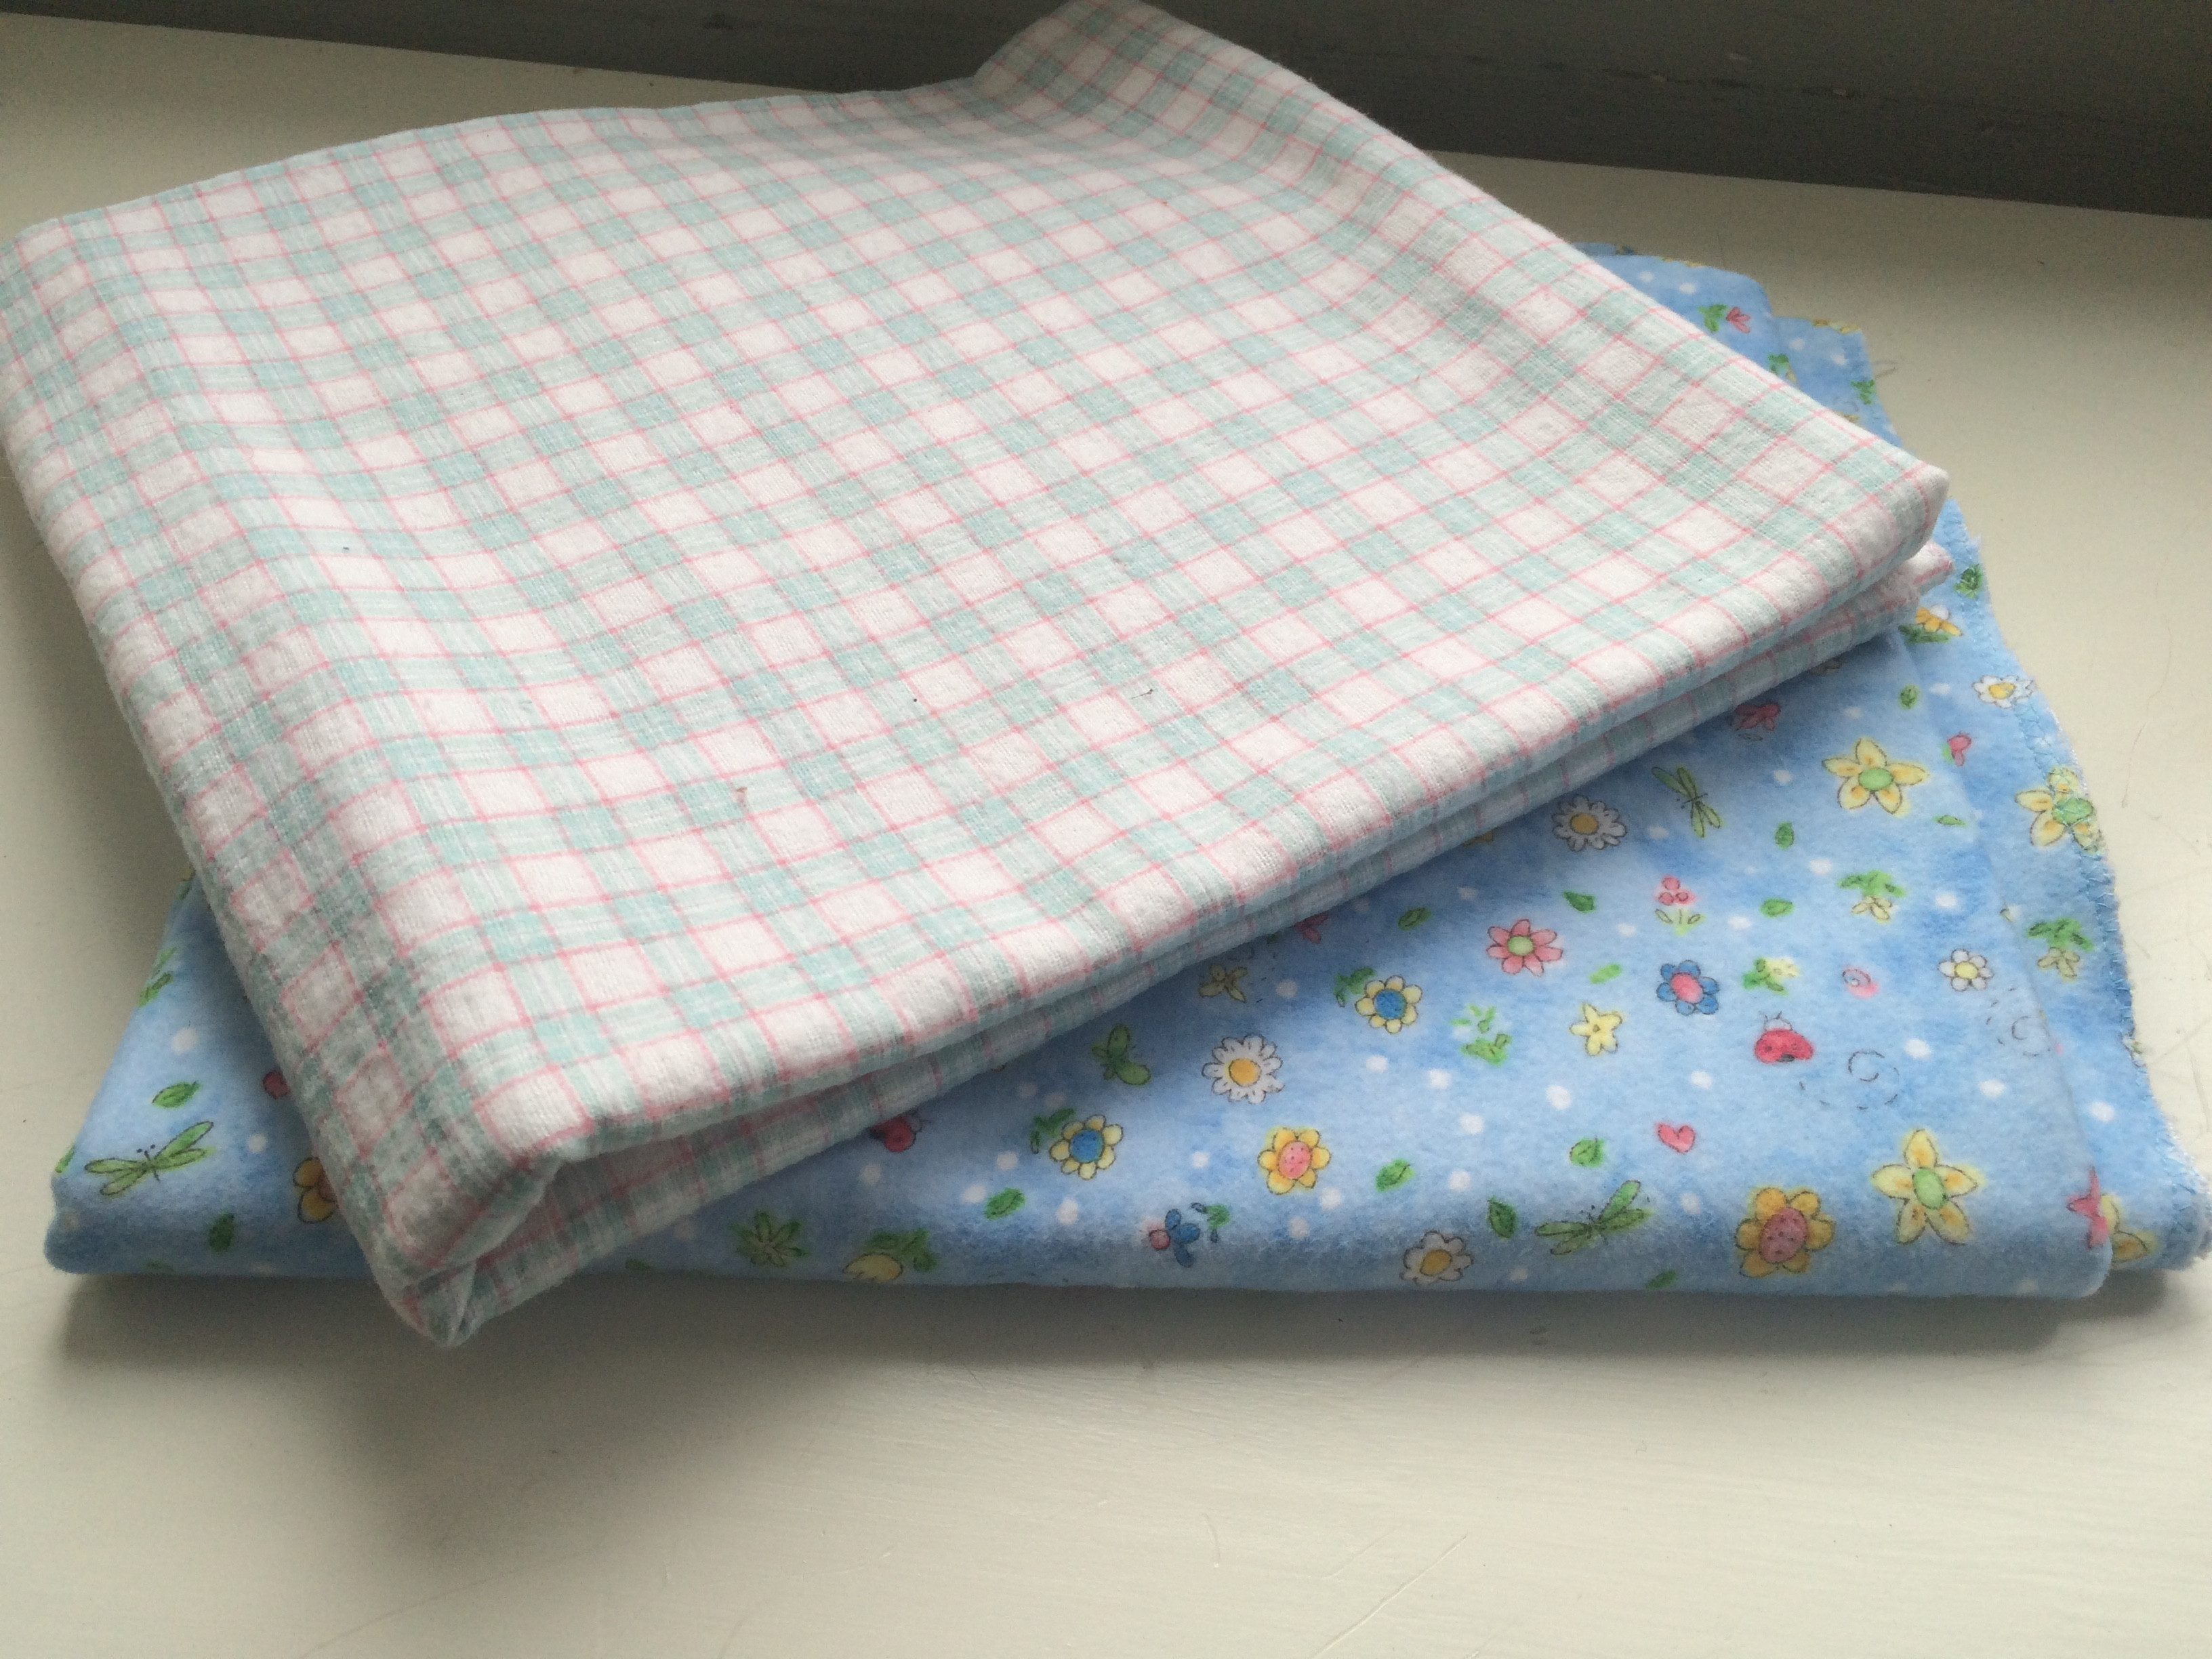 Best ideas about DIY Baby Blanket . Save or Pin Finished Project DIY Baby Blankets Now.